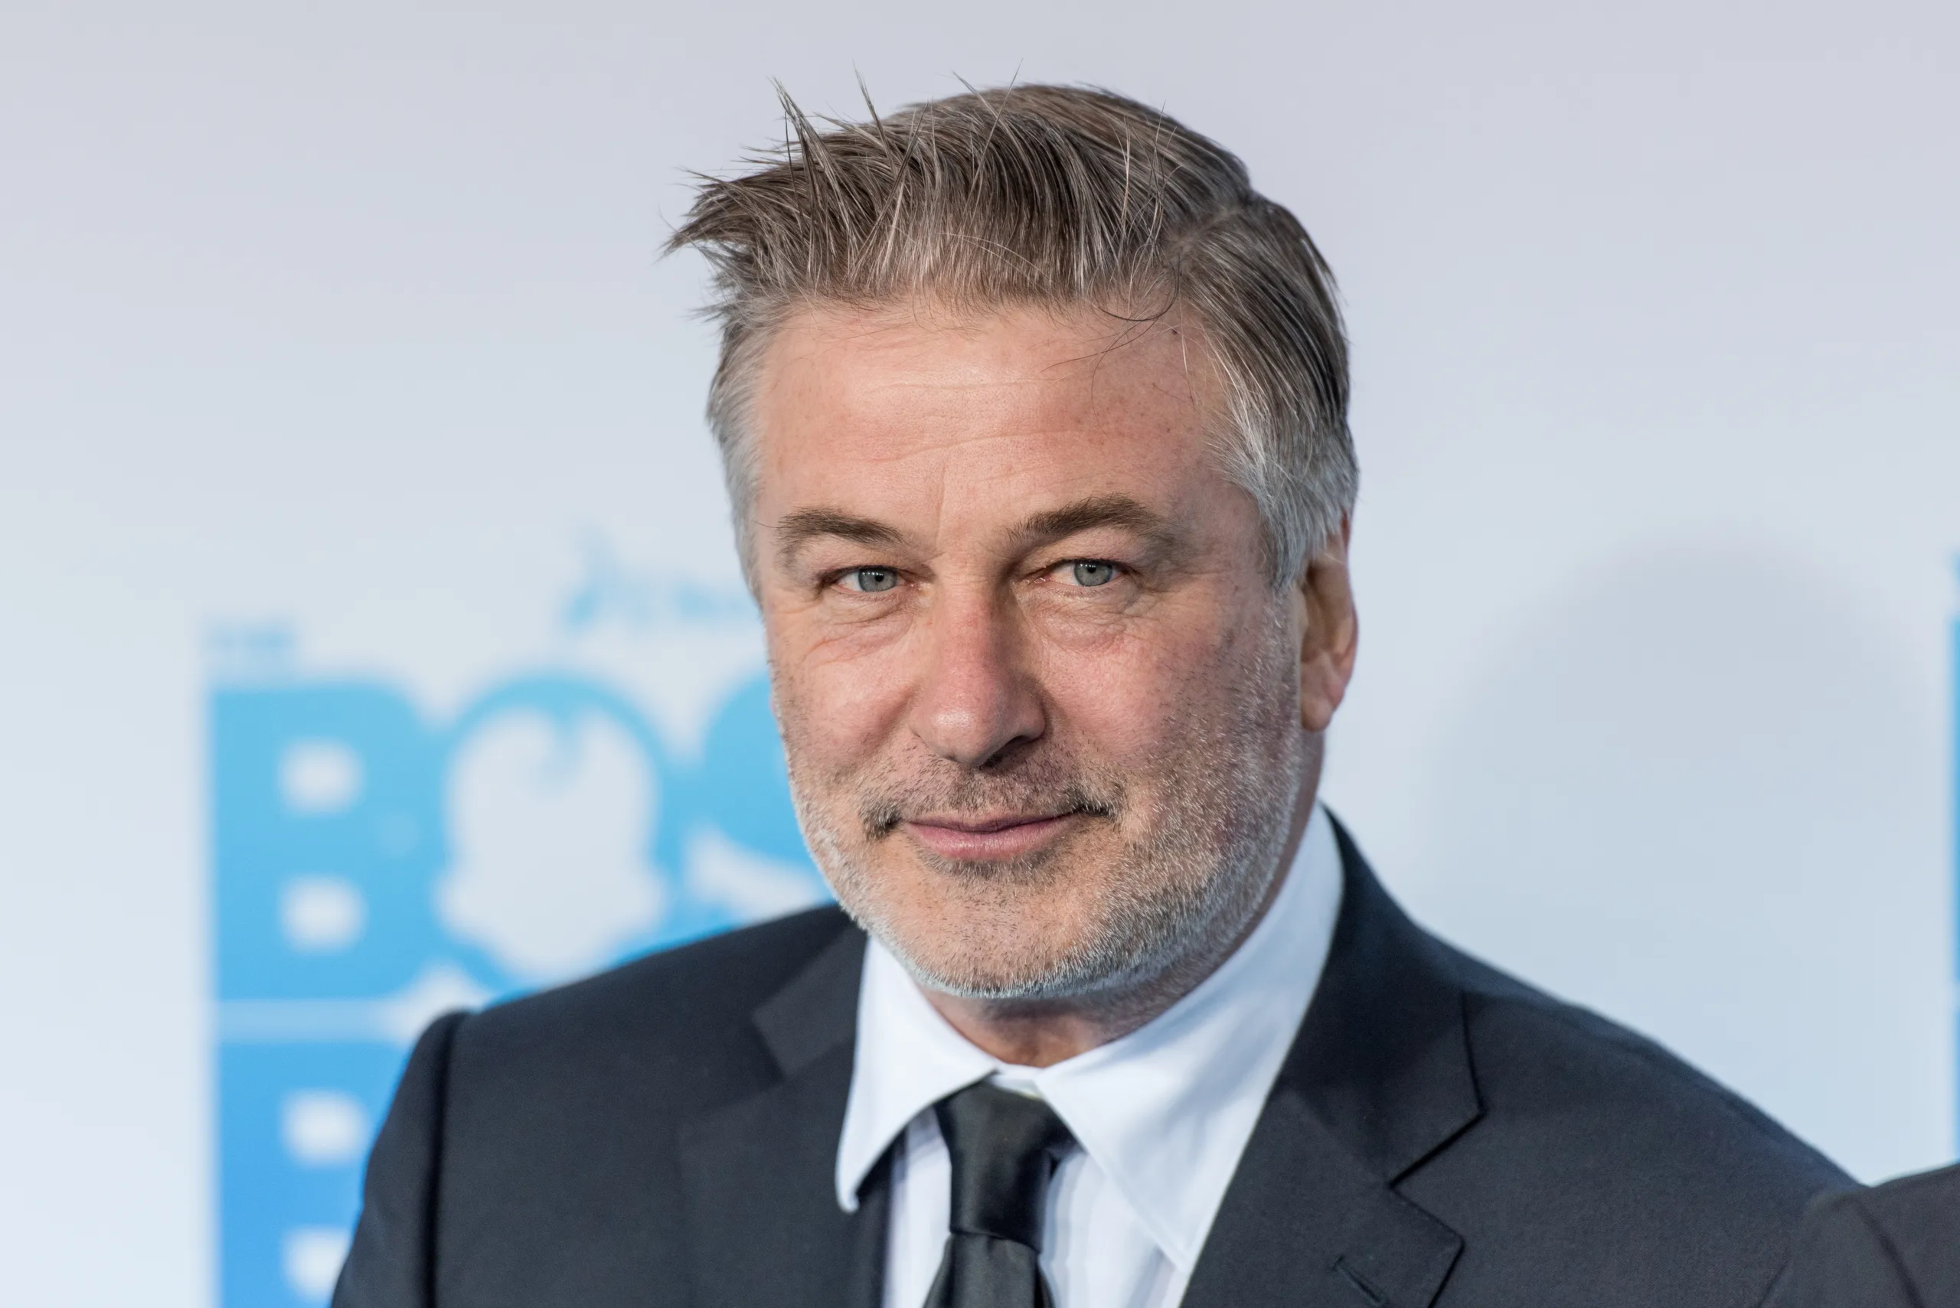 EDITOR'S PICK: Alec Baldwin's has one hell of a watch collection from Bulgari to Breitling and IWC